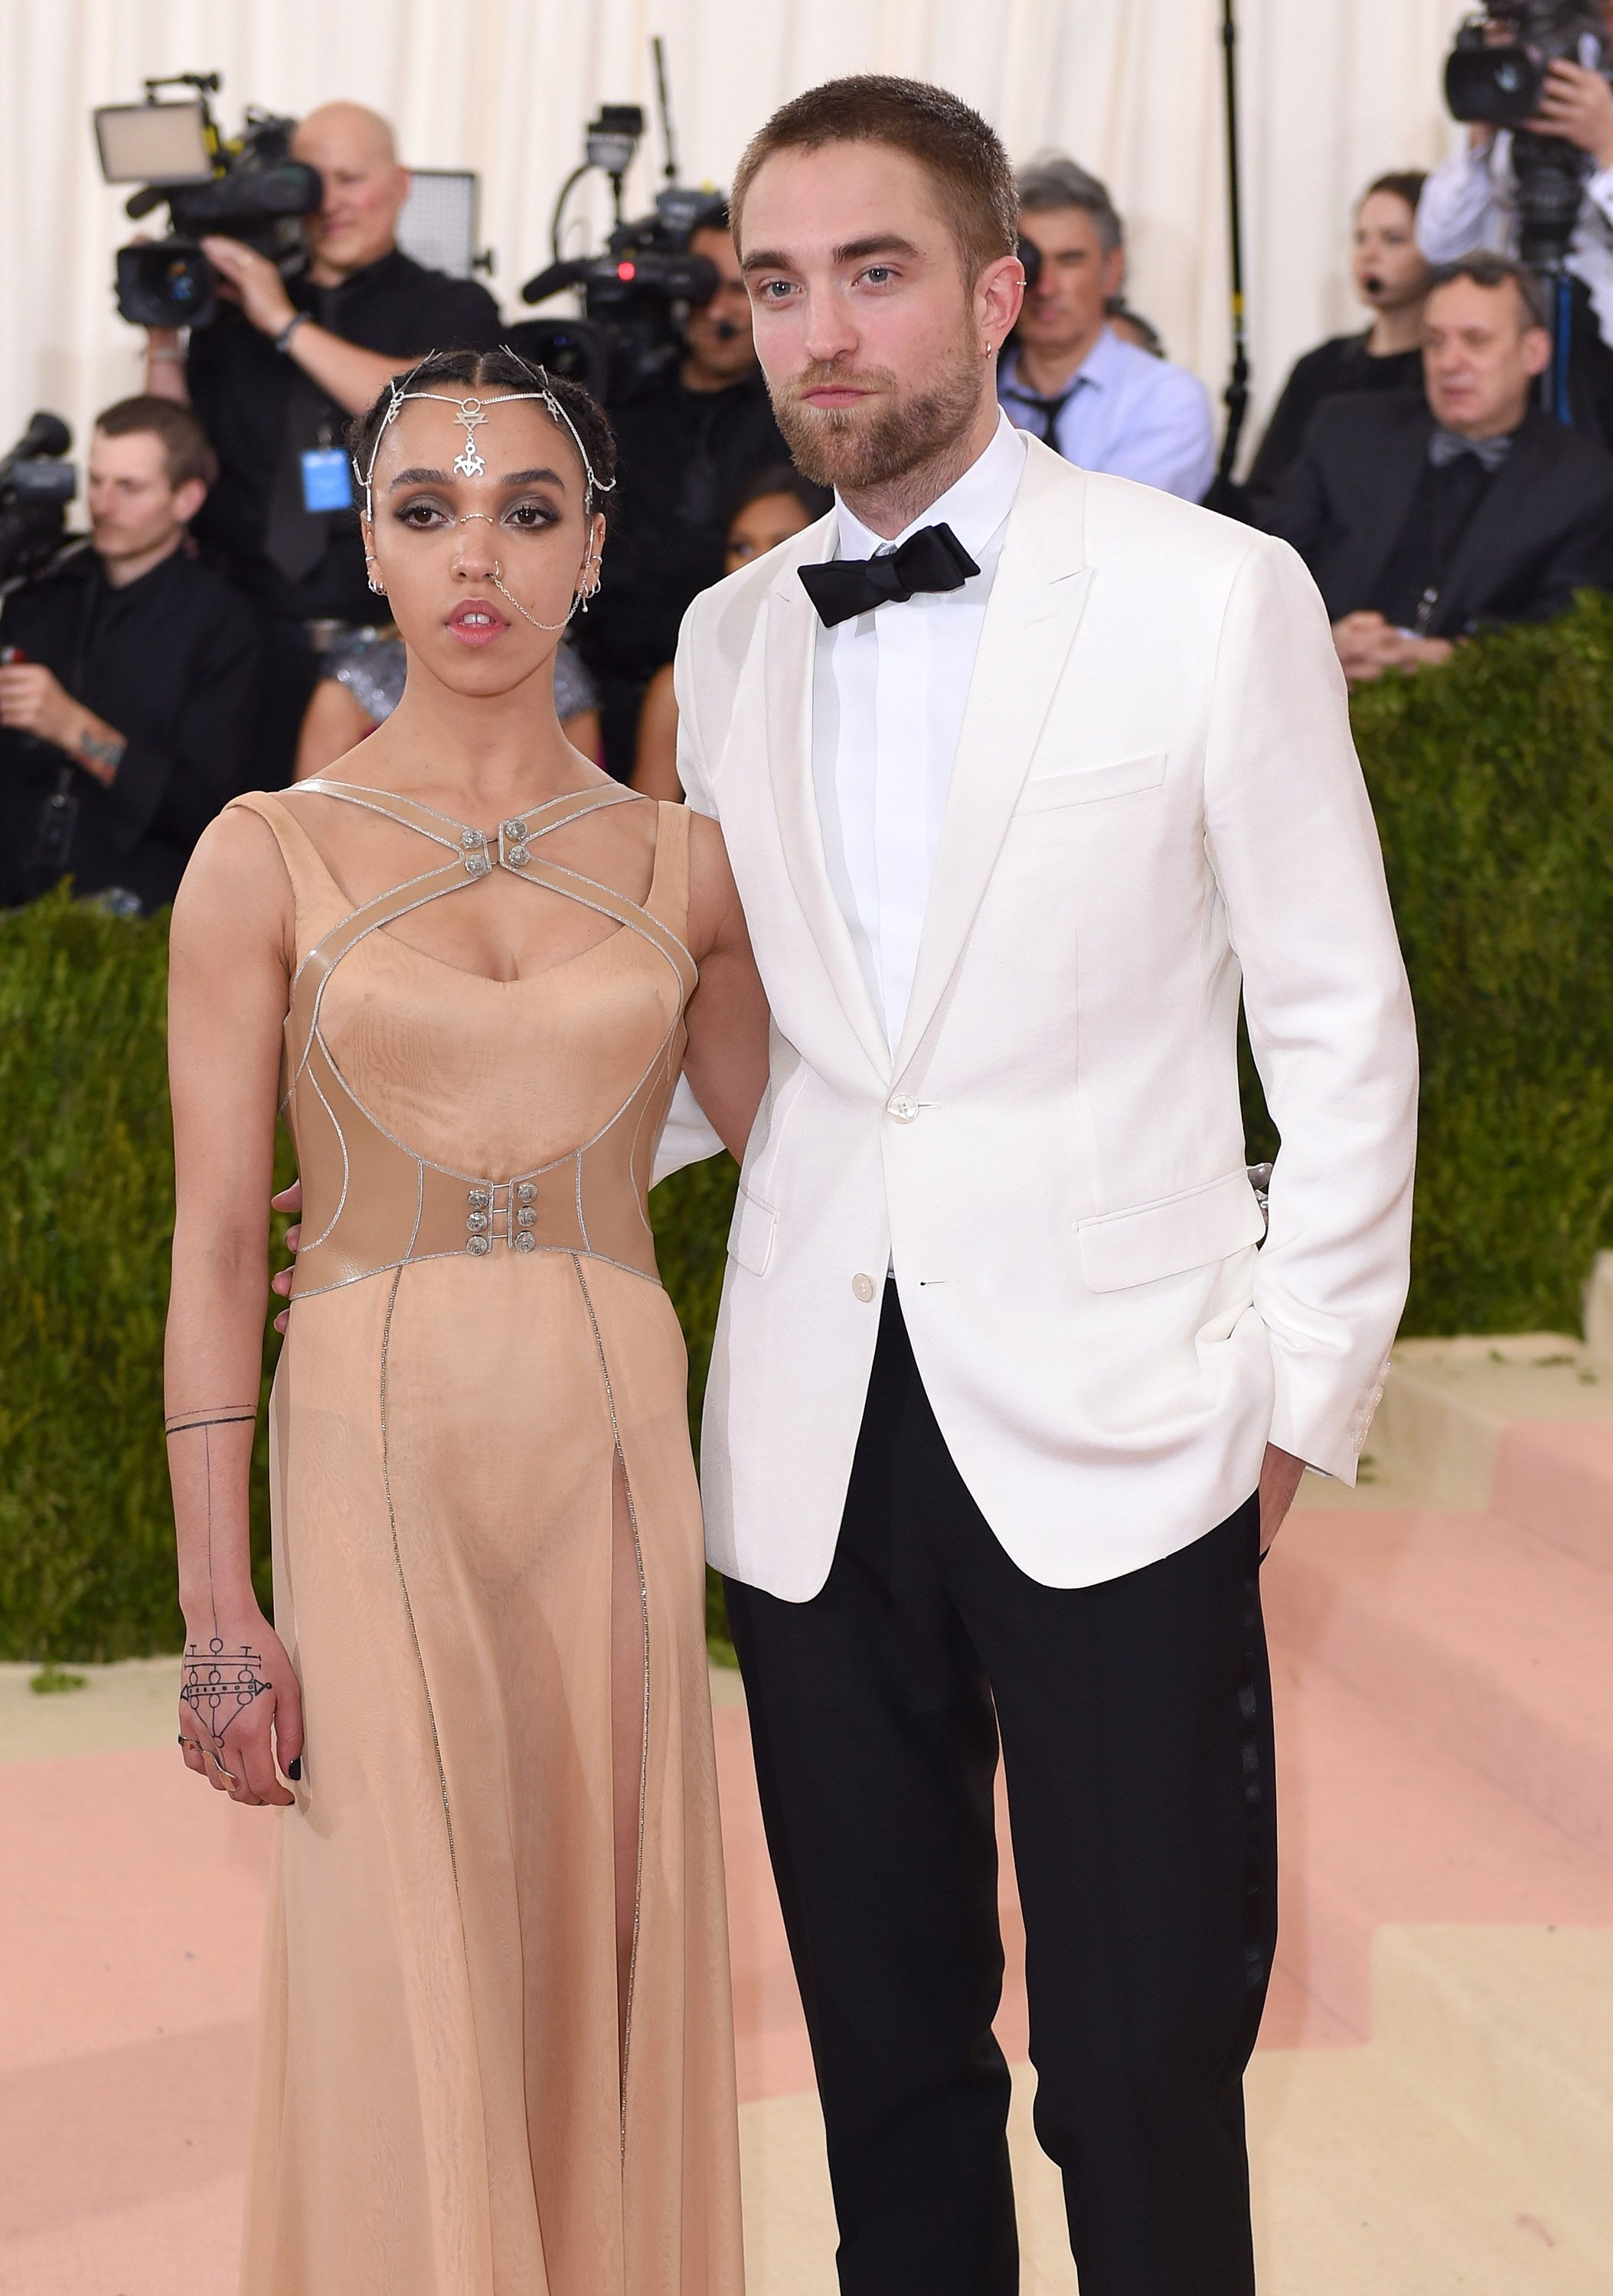 FKA Twigs and Robert Pattinson This couple's two-year relationship was initiated via a special introduction by Sienna Miller and her then-beau Tom Sturridge. The three actors attended an FKA Twigs concert together, and Sturridge made sure to get Pattinson backstage access to meet the singer.